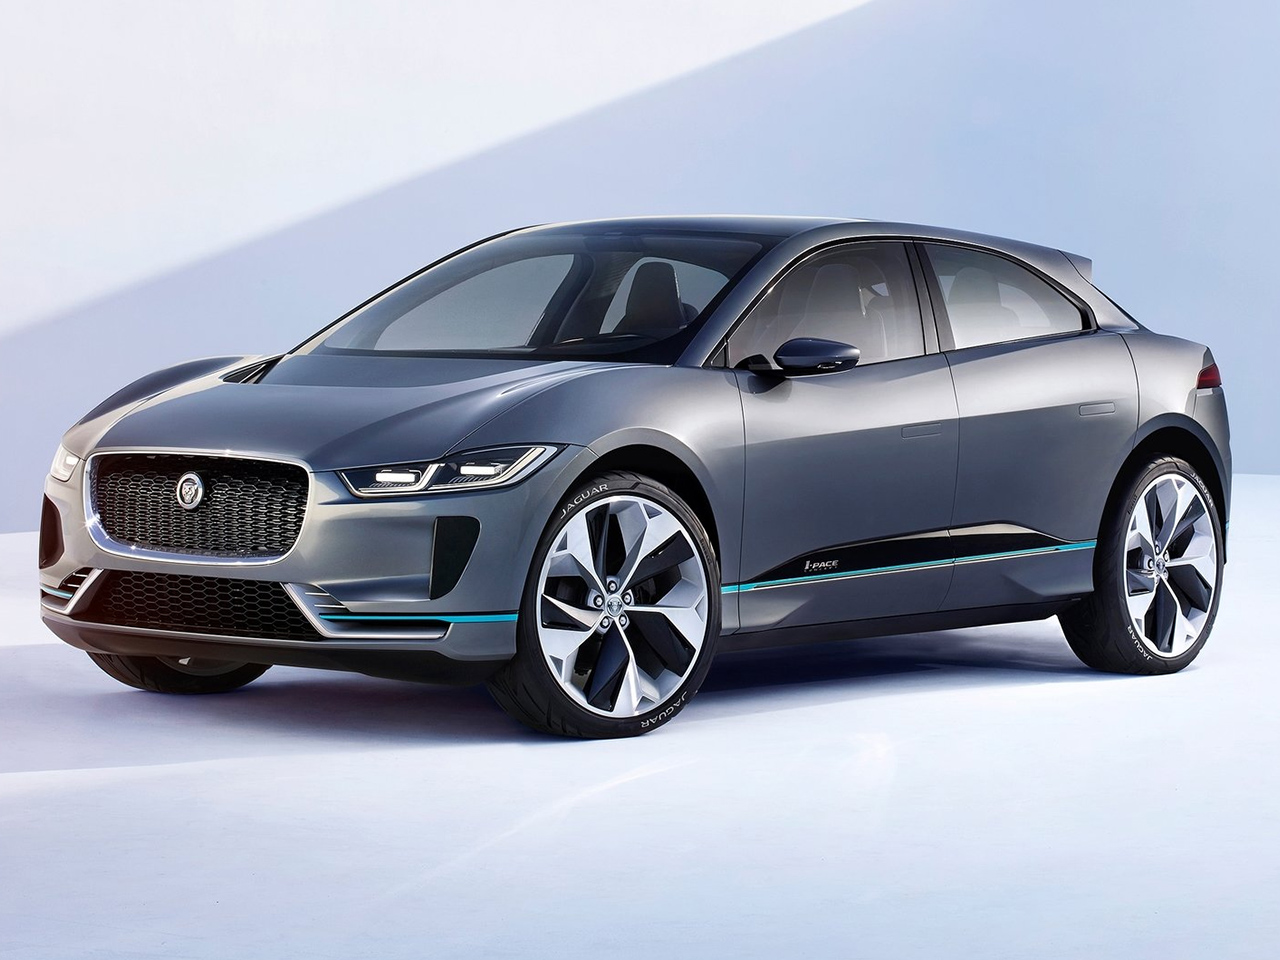 2020 Jaguar Xj Coupe Performance and New Engine